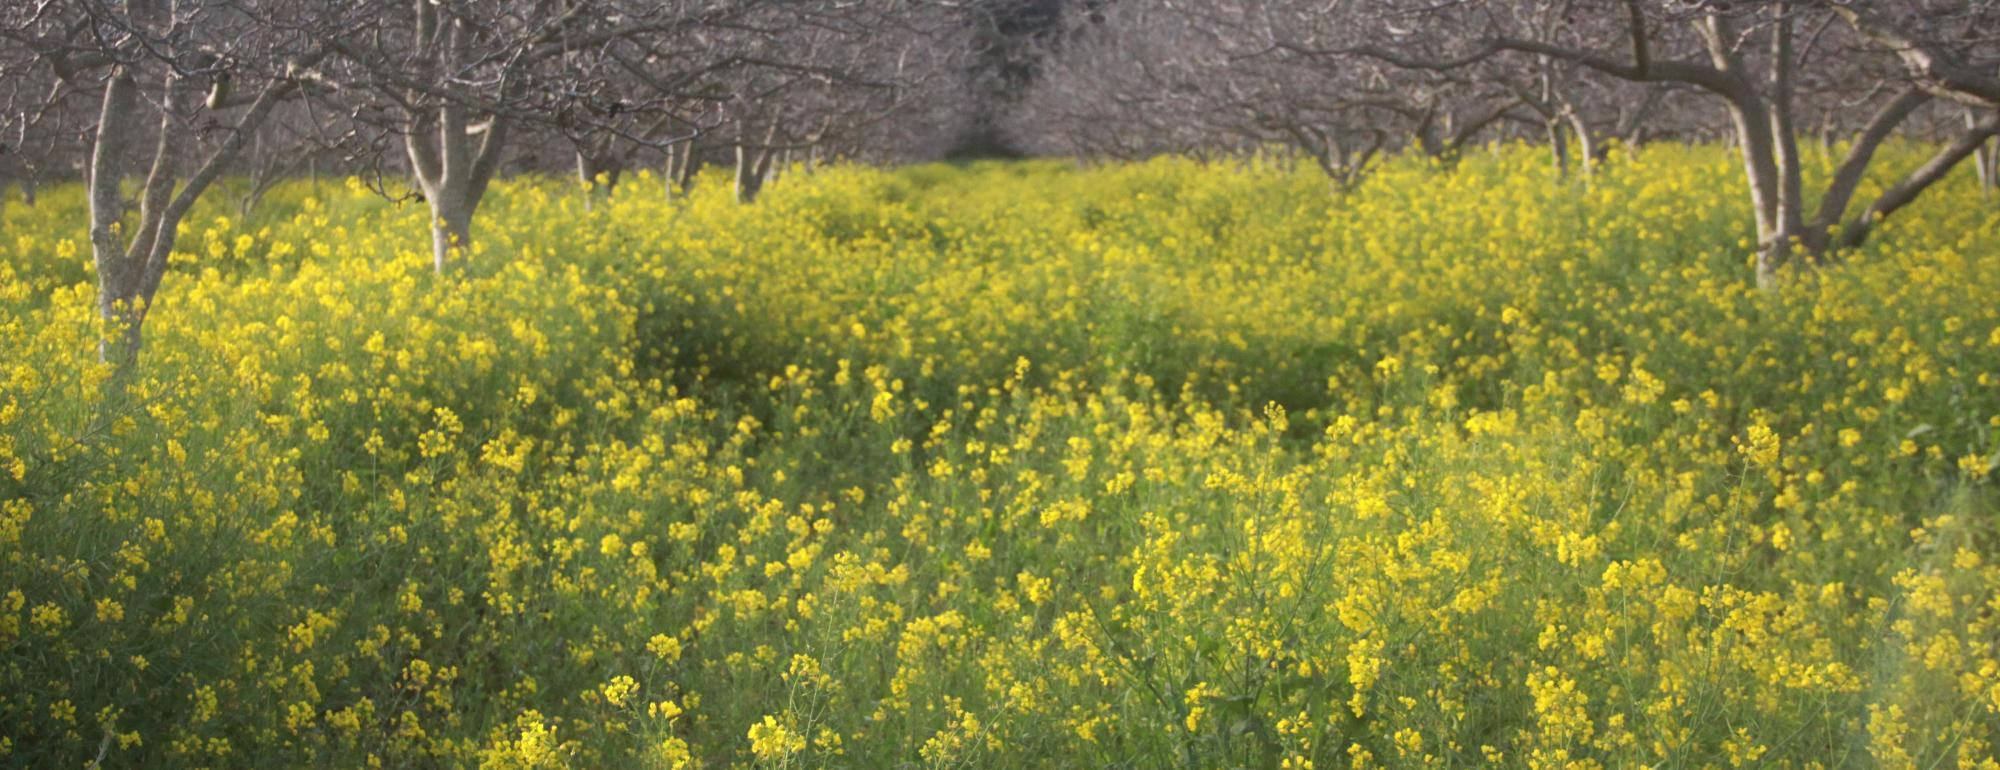 Walnut orchard planted with mustard